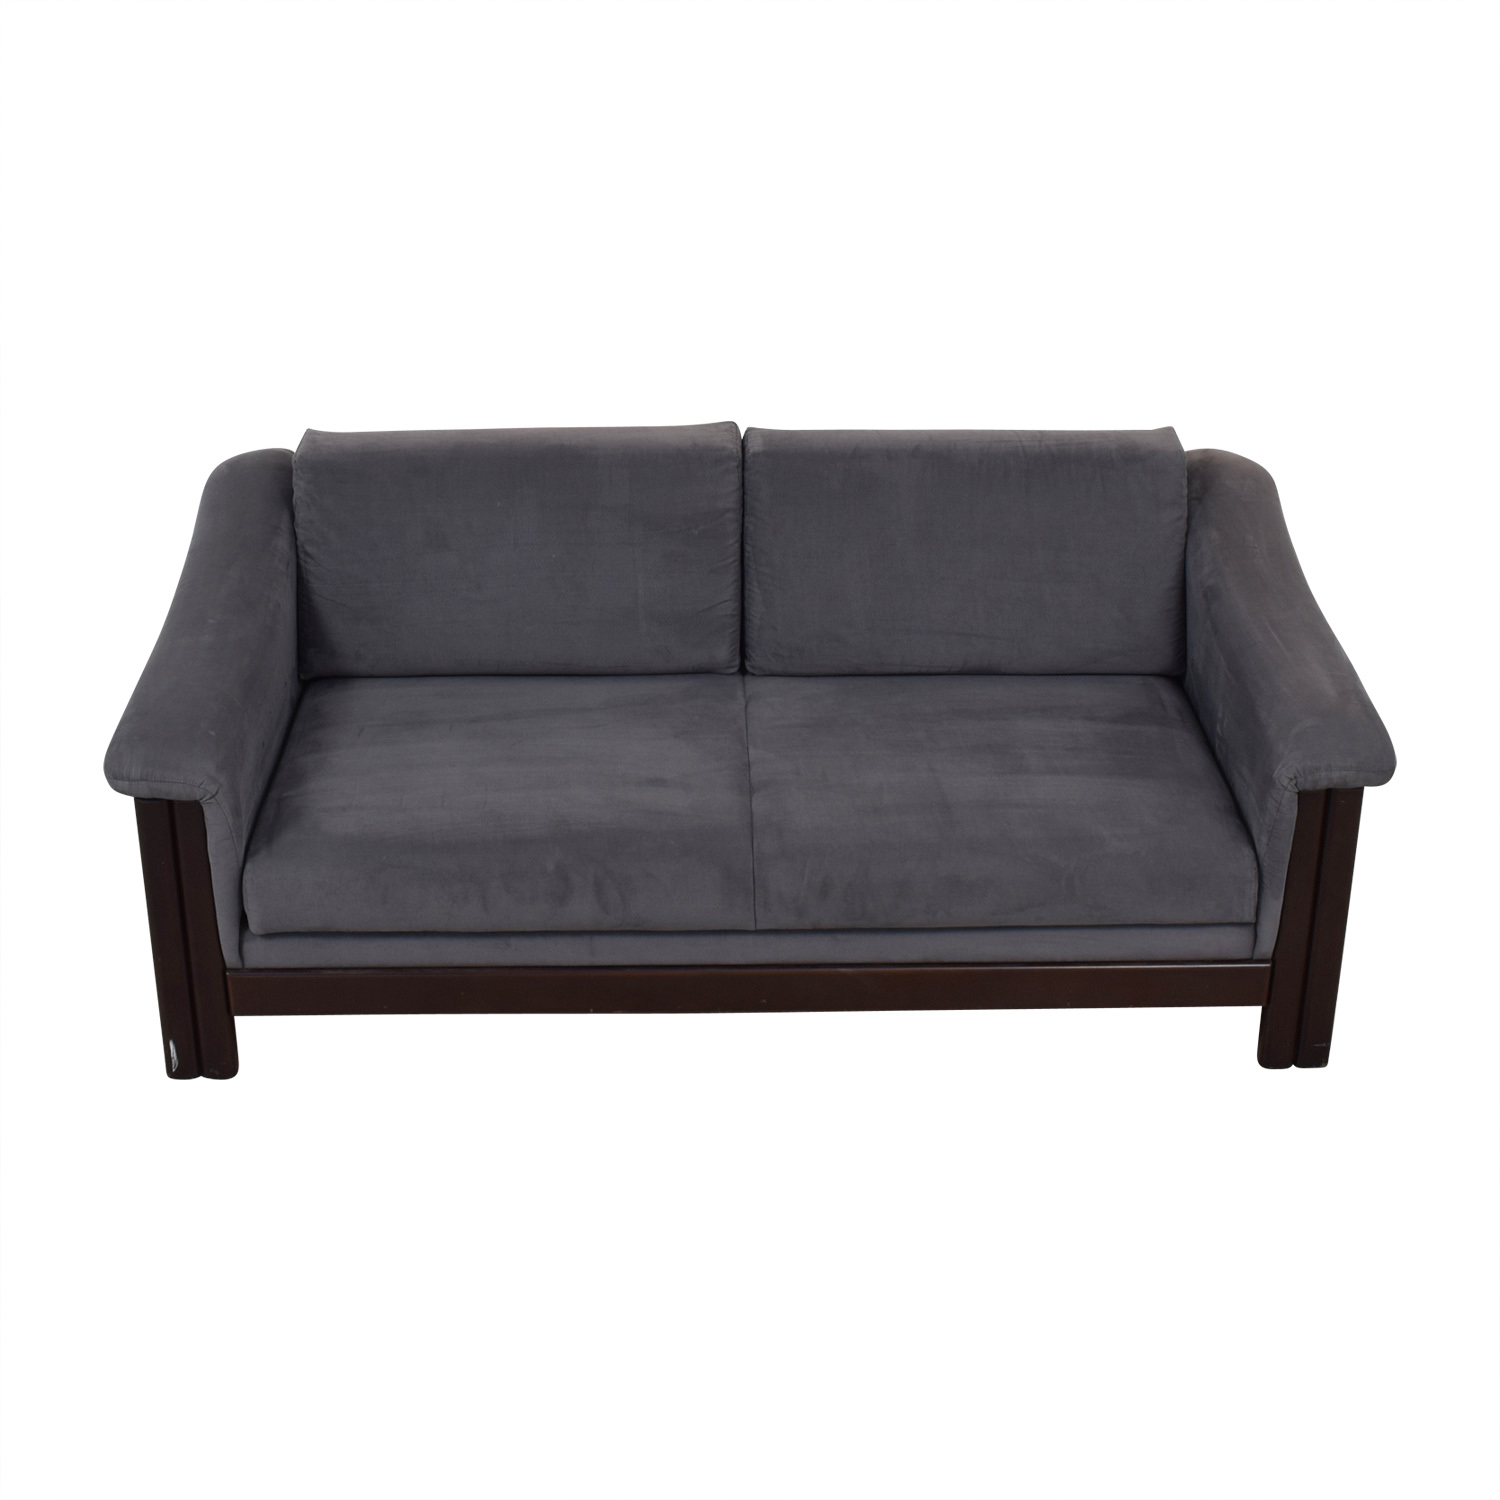 Charcoal Micro Suede Three Cushion Sofa Bed Gray